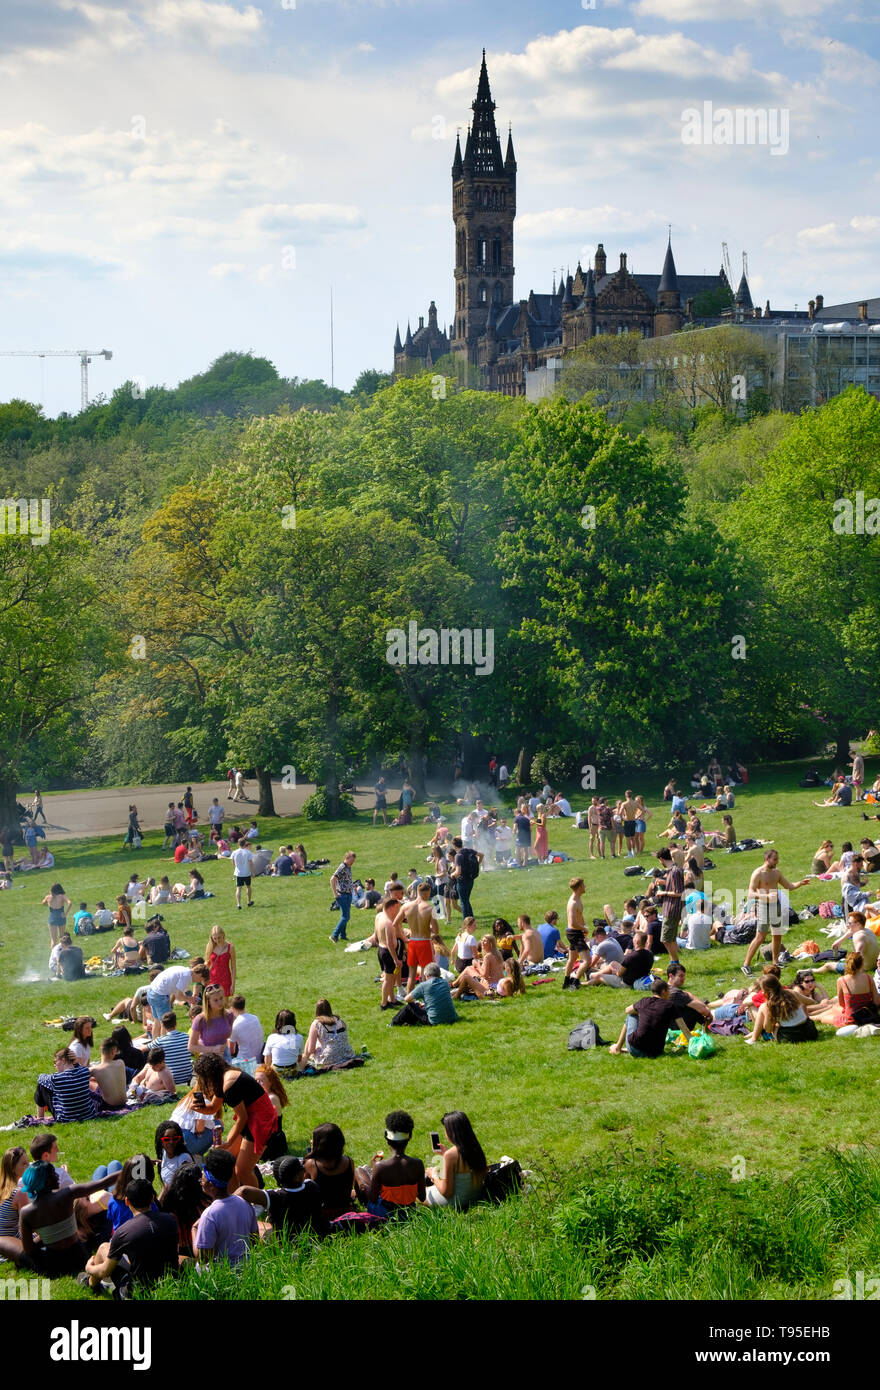 Hot weather and people in Glasgow Kelvingrove Park with Glasgow University to rear in Glasgow West End, Scotland, UK - Stock Image